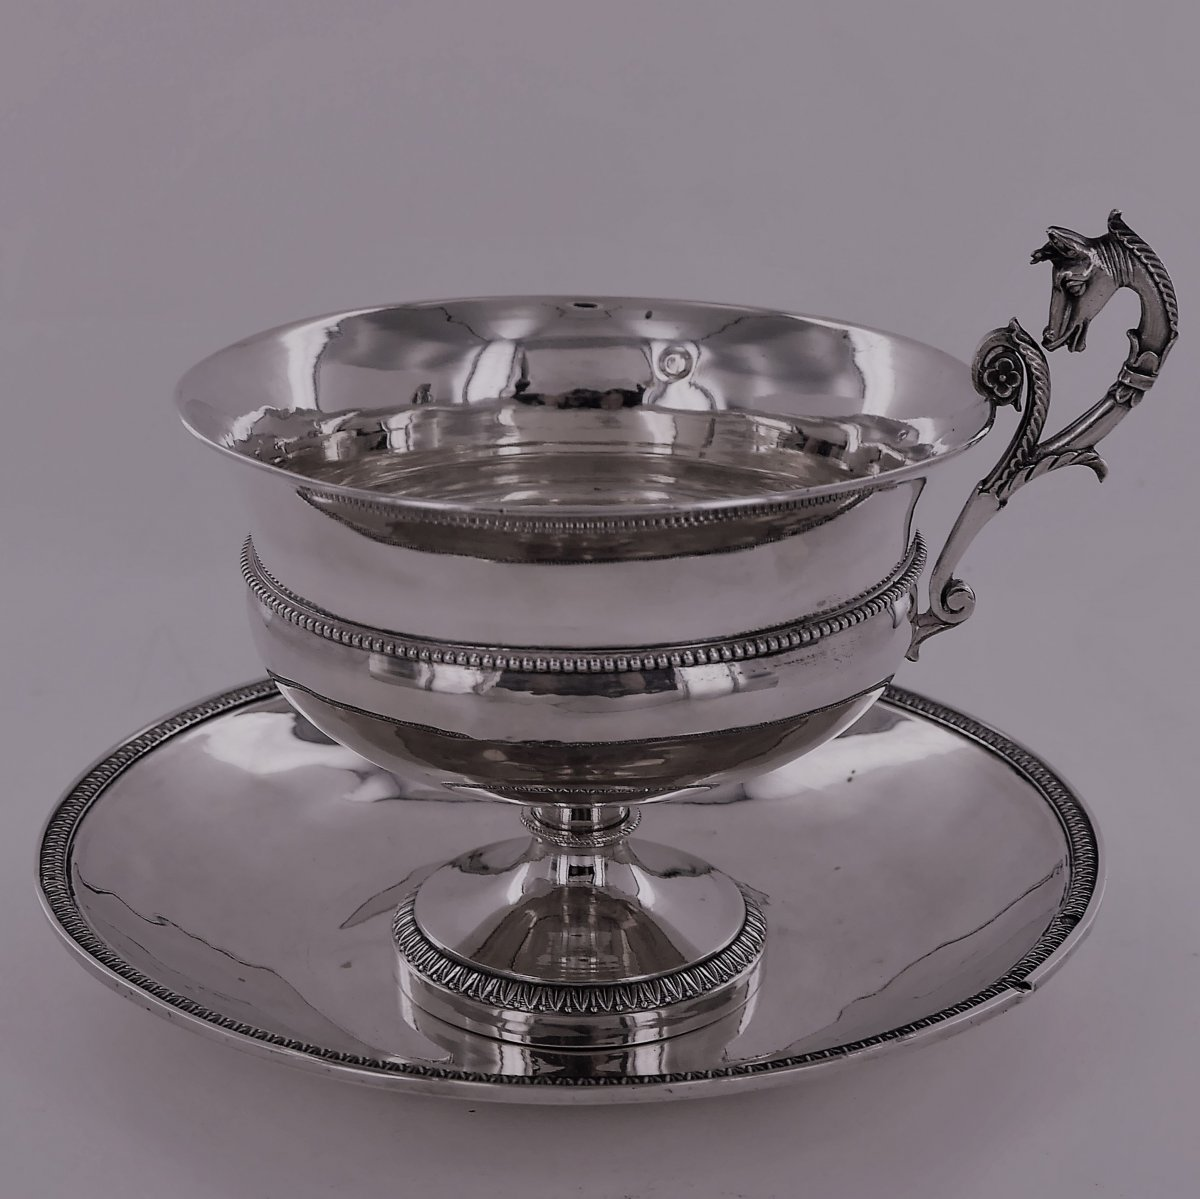 Chocolate Cup And Saucer, Sterling Silver, Empire Period, Early 19th Century